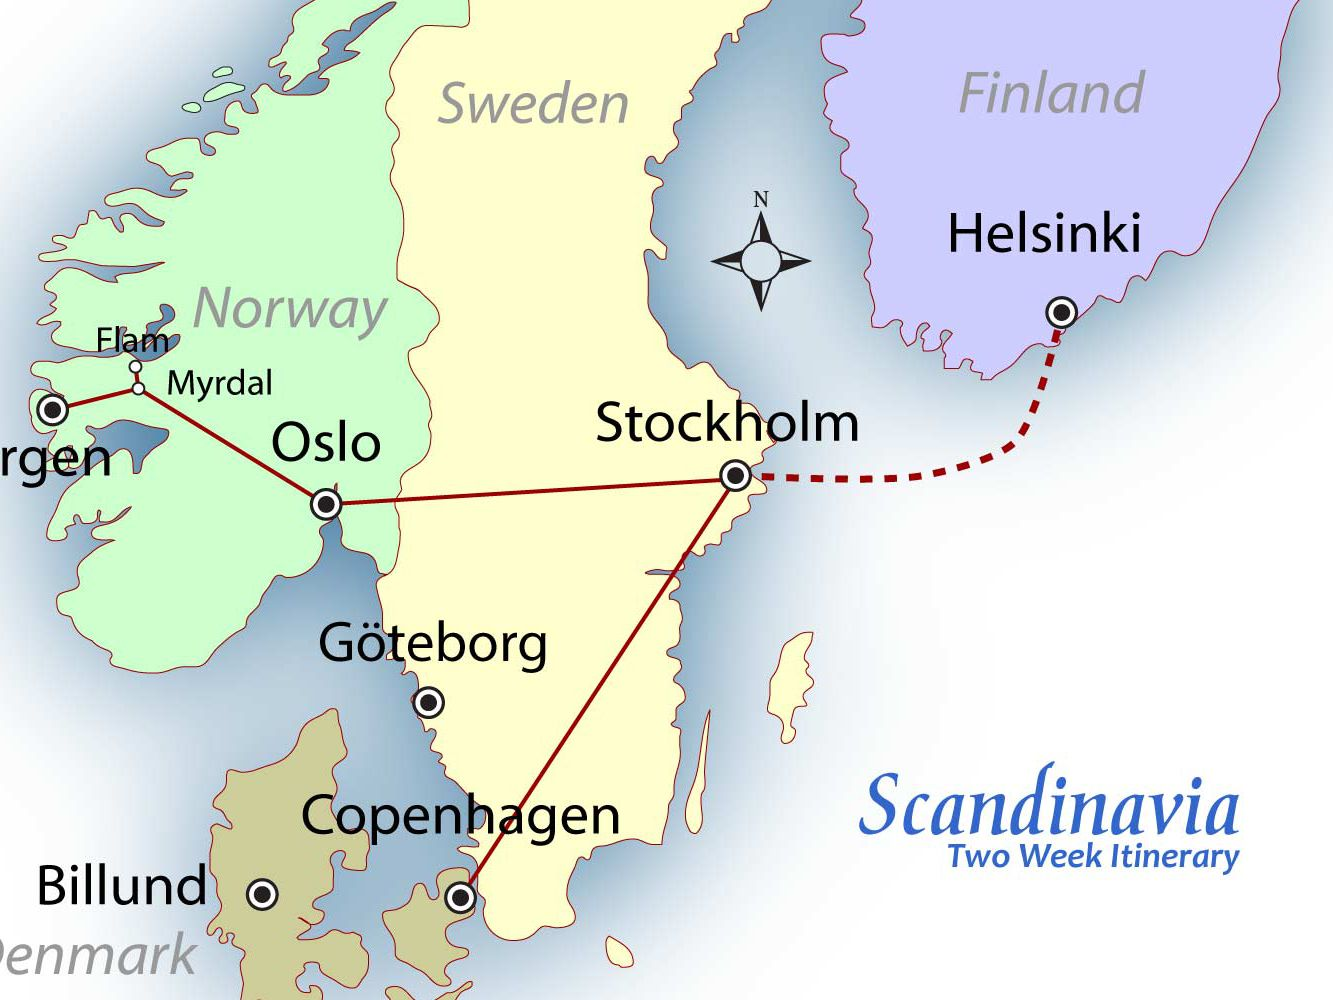 Scandinavia Suggested Itinerary